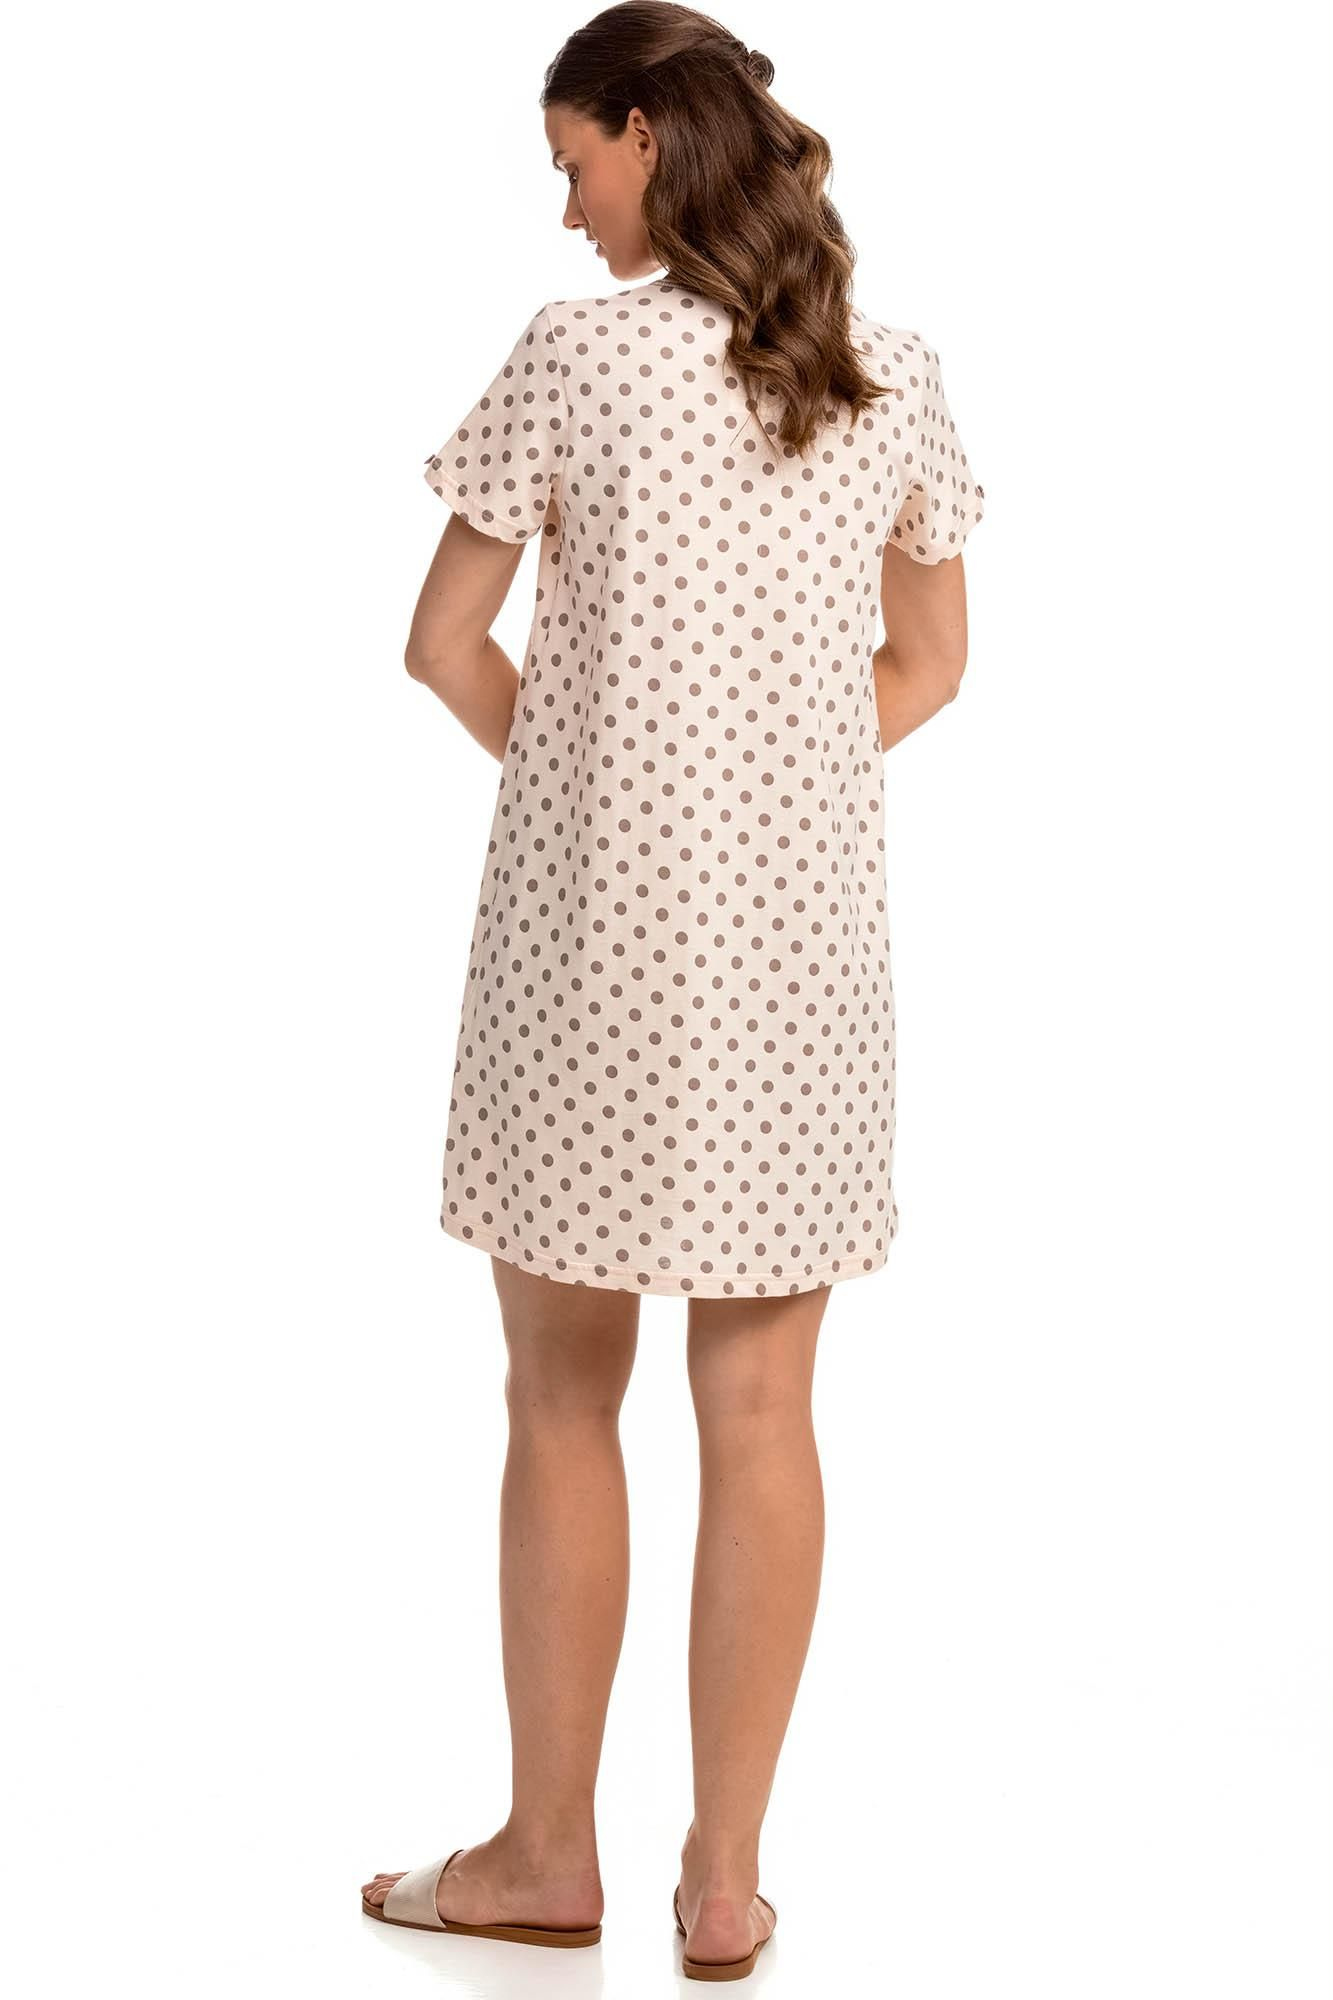 Polka Dot Nightdress